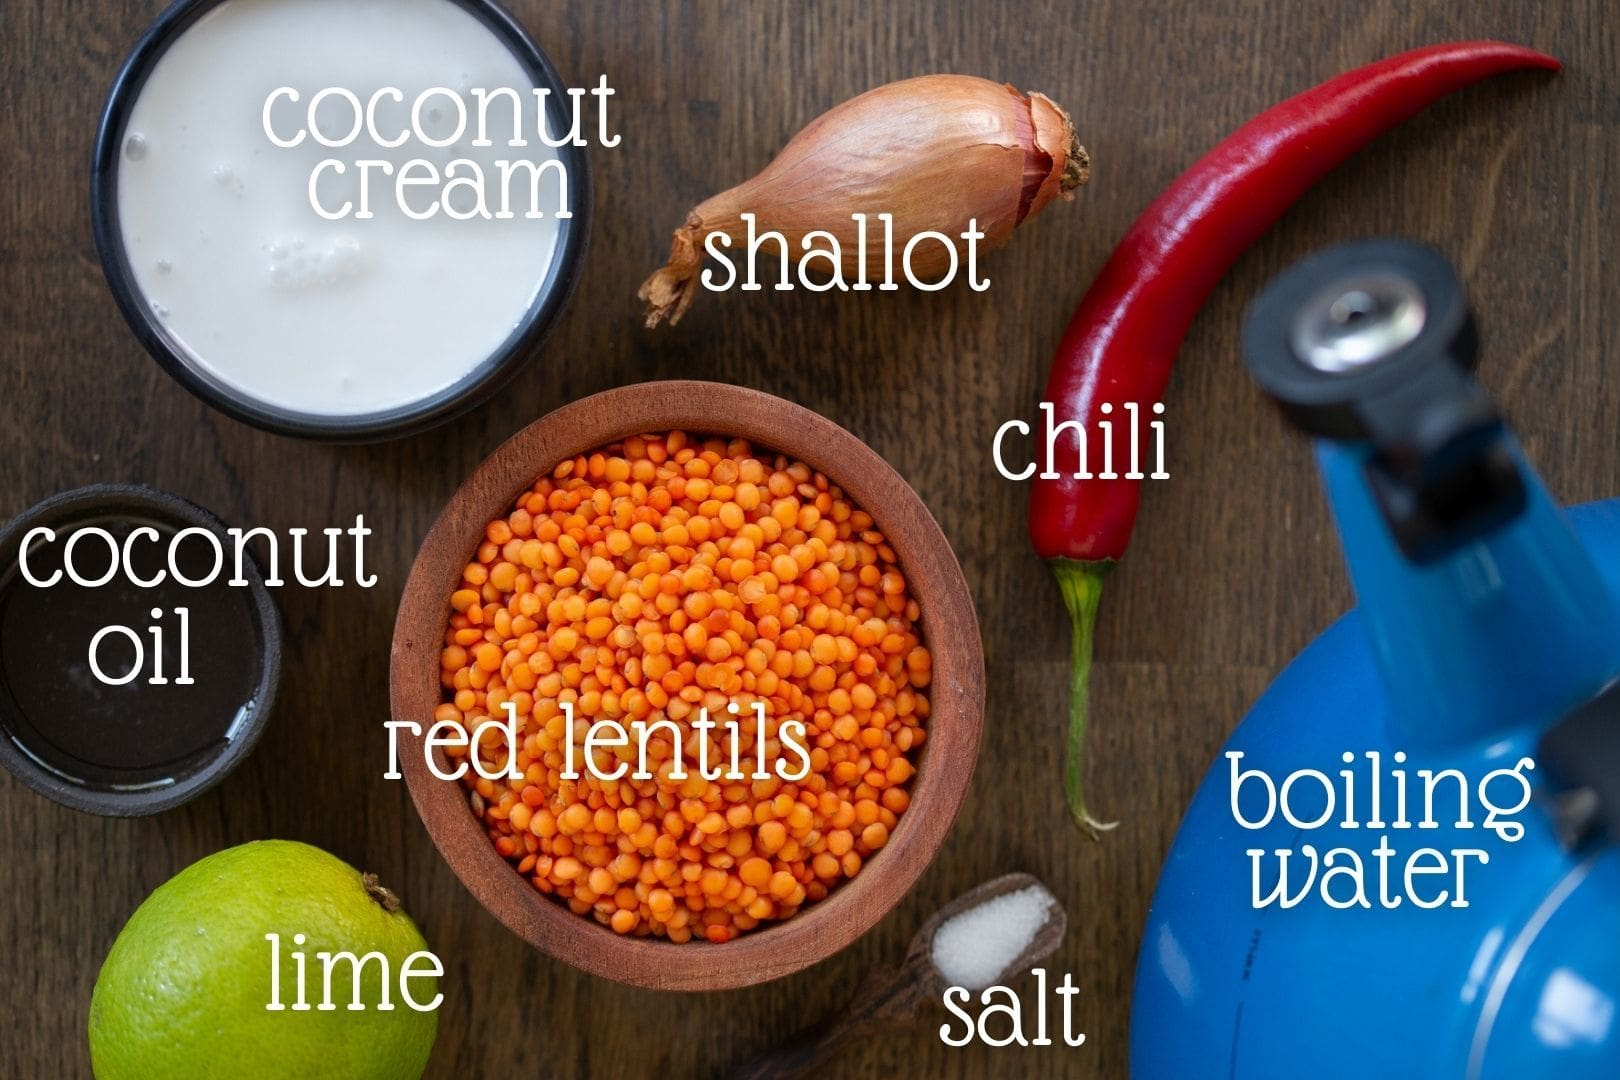 Overhead view of the ingredients needed with a description.